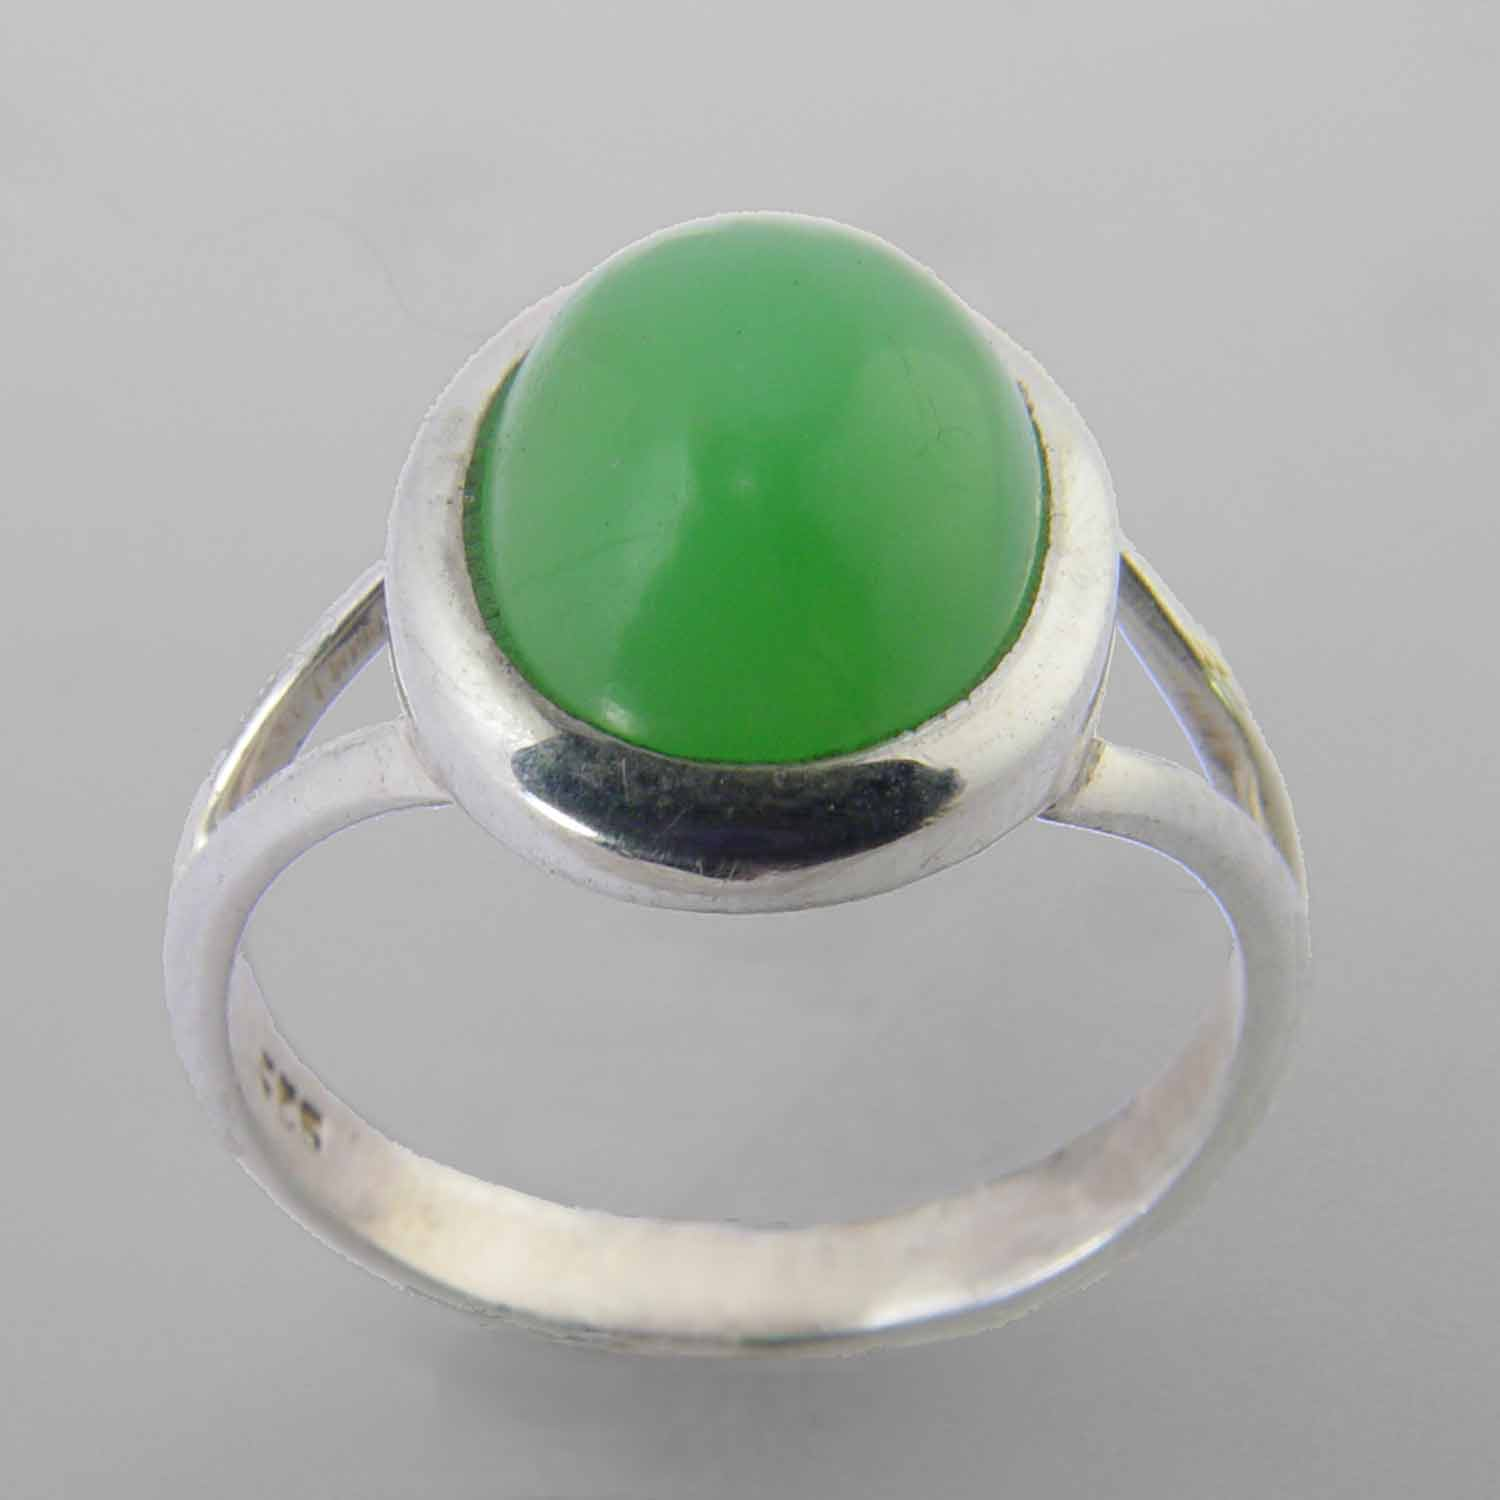 Chrysoprase 5.2 ct Oval Cab Bezel Set Sterling Silver Ring, Size 9